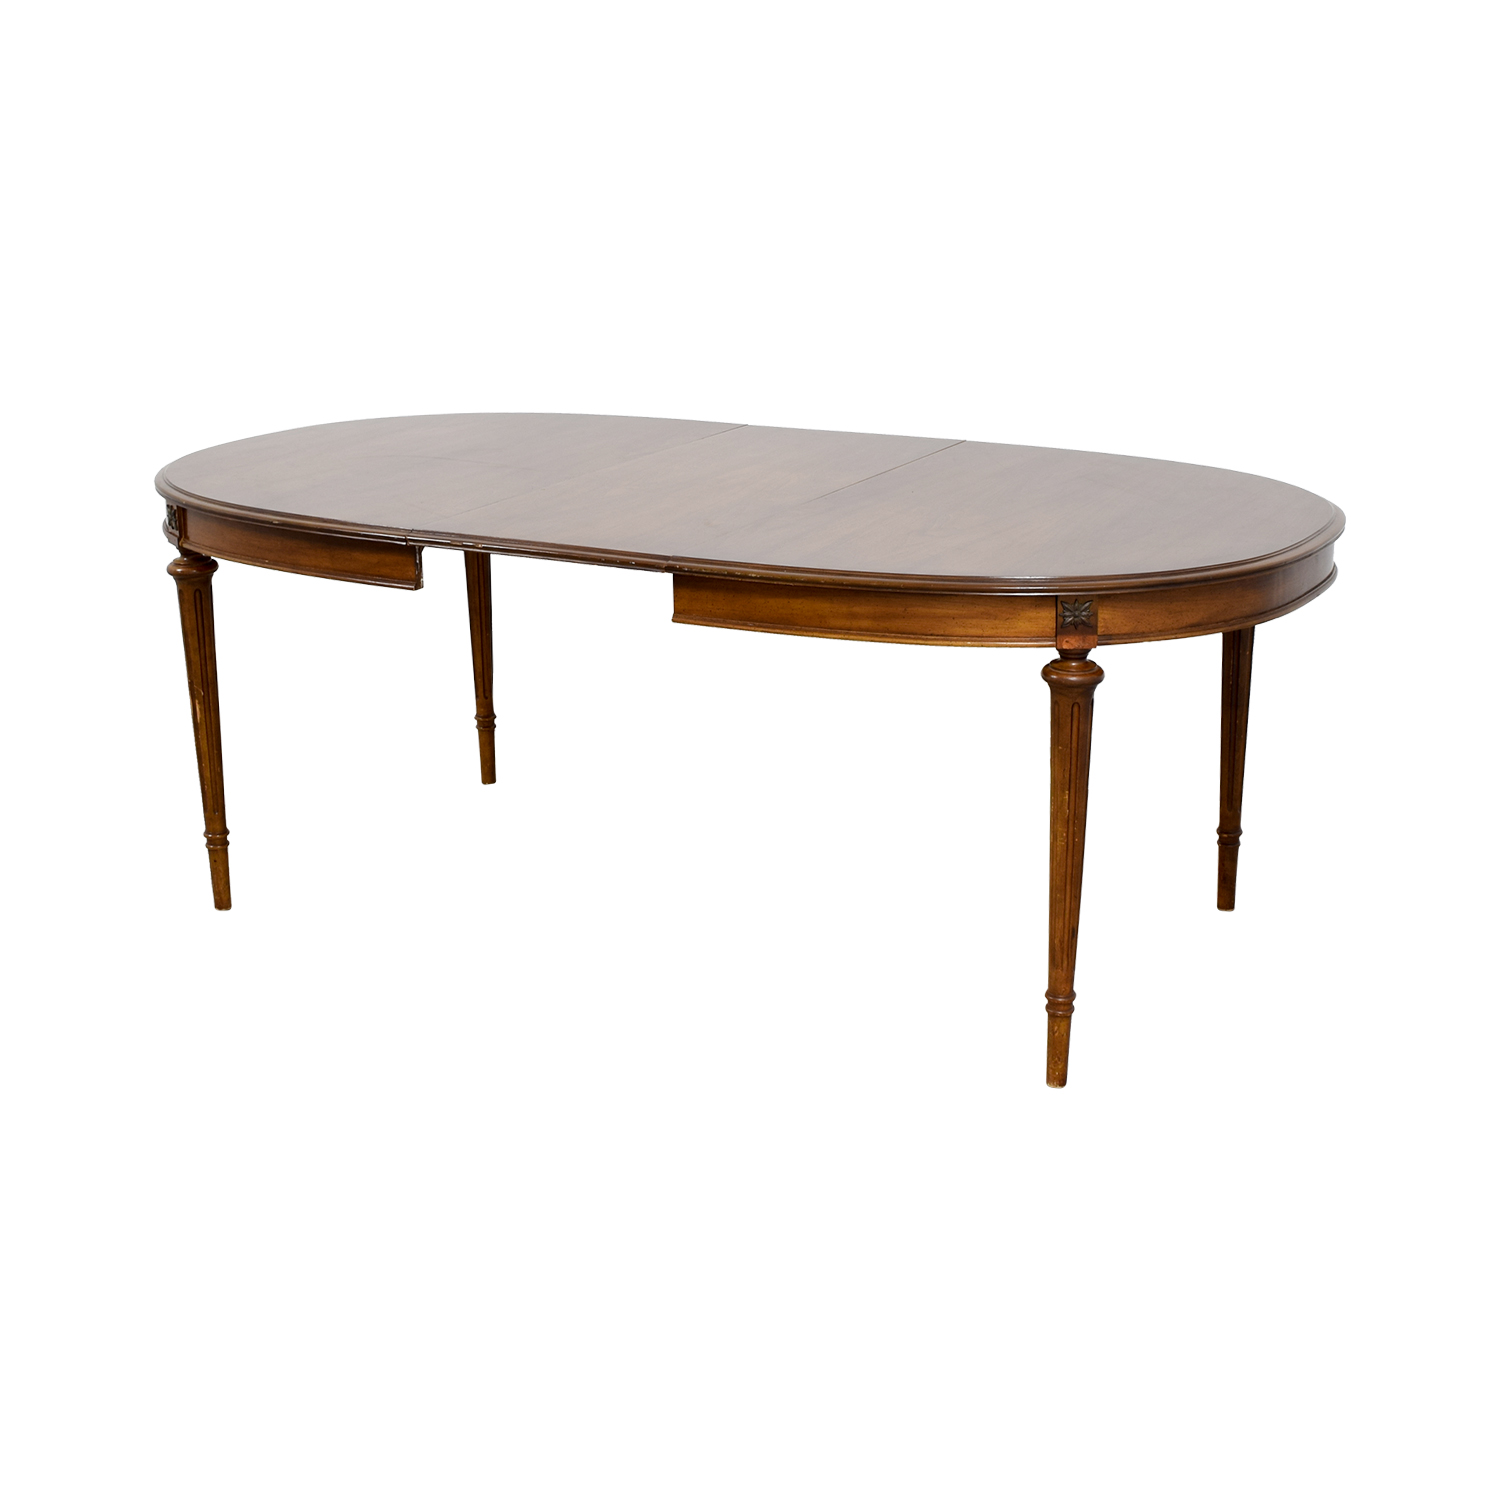 64 off wood extendable oval dining table tables for Buy dining table